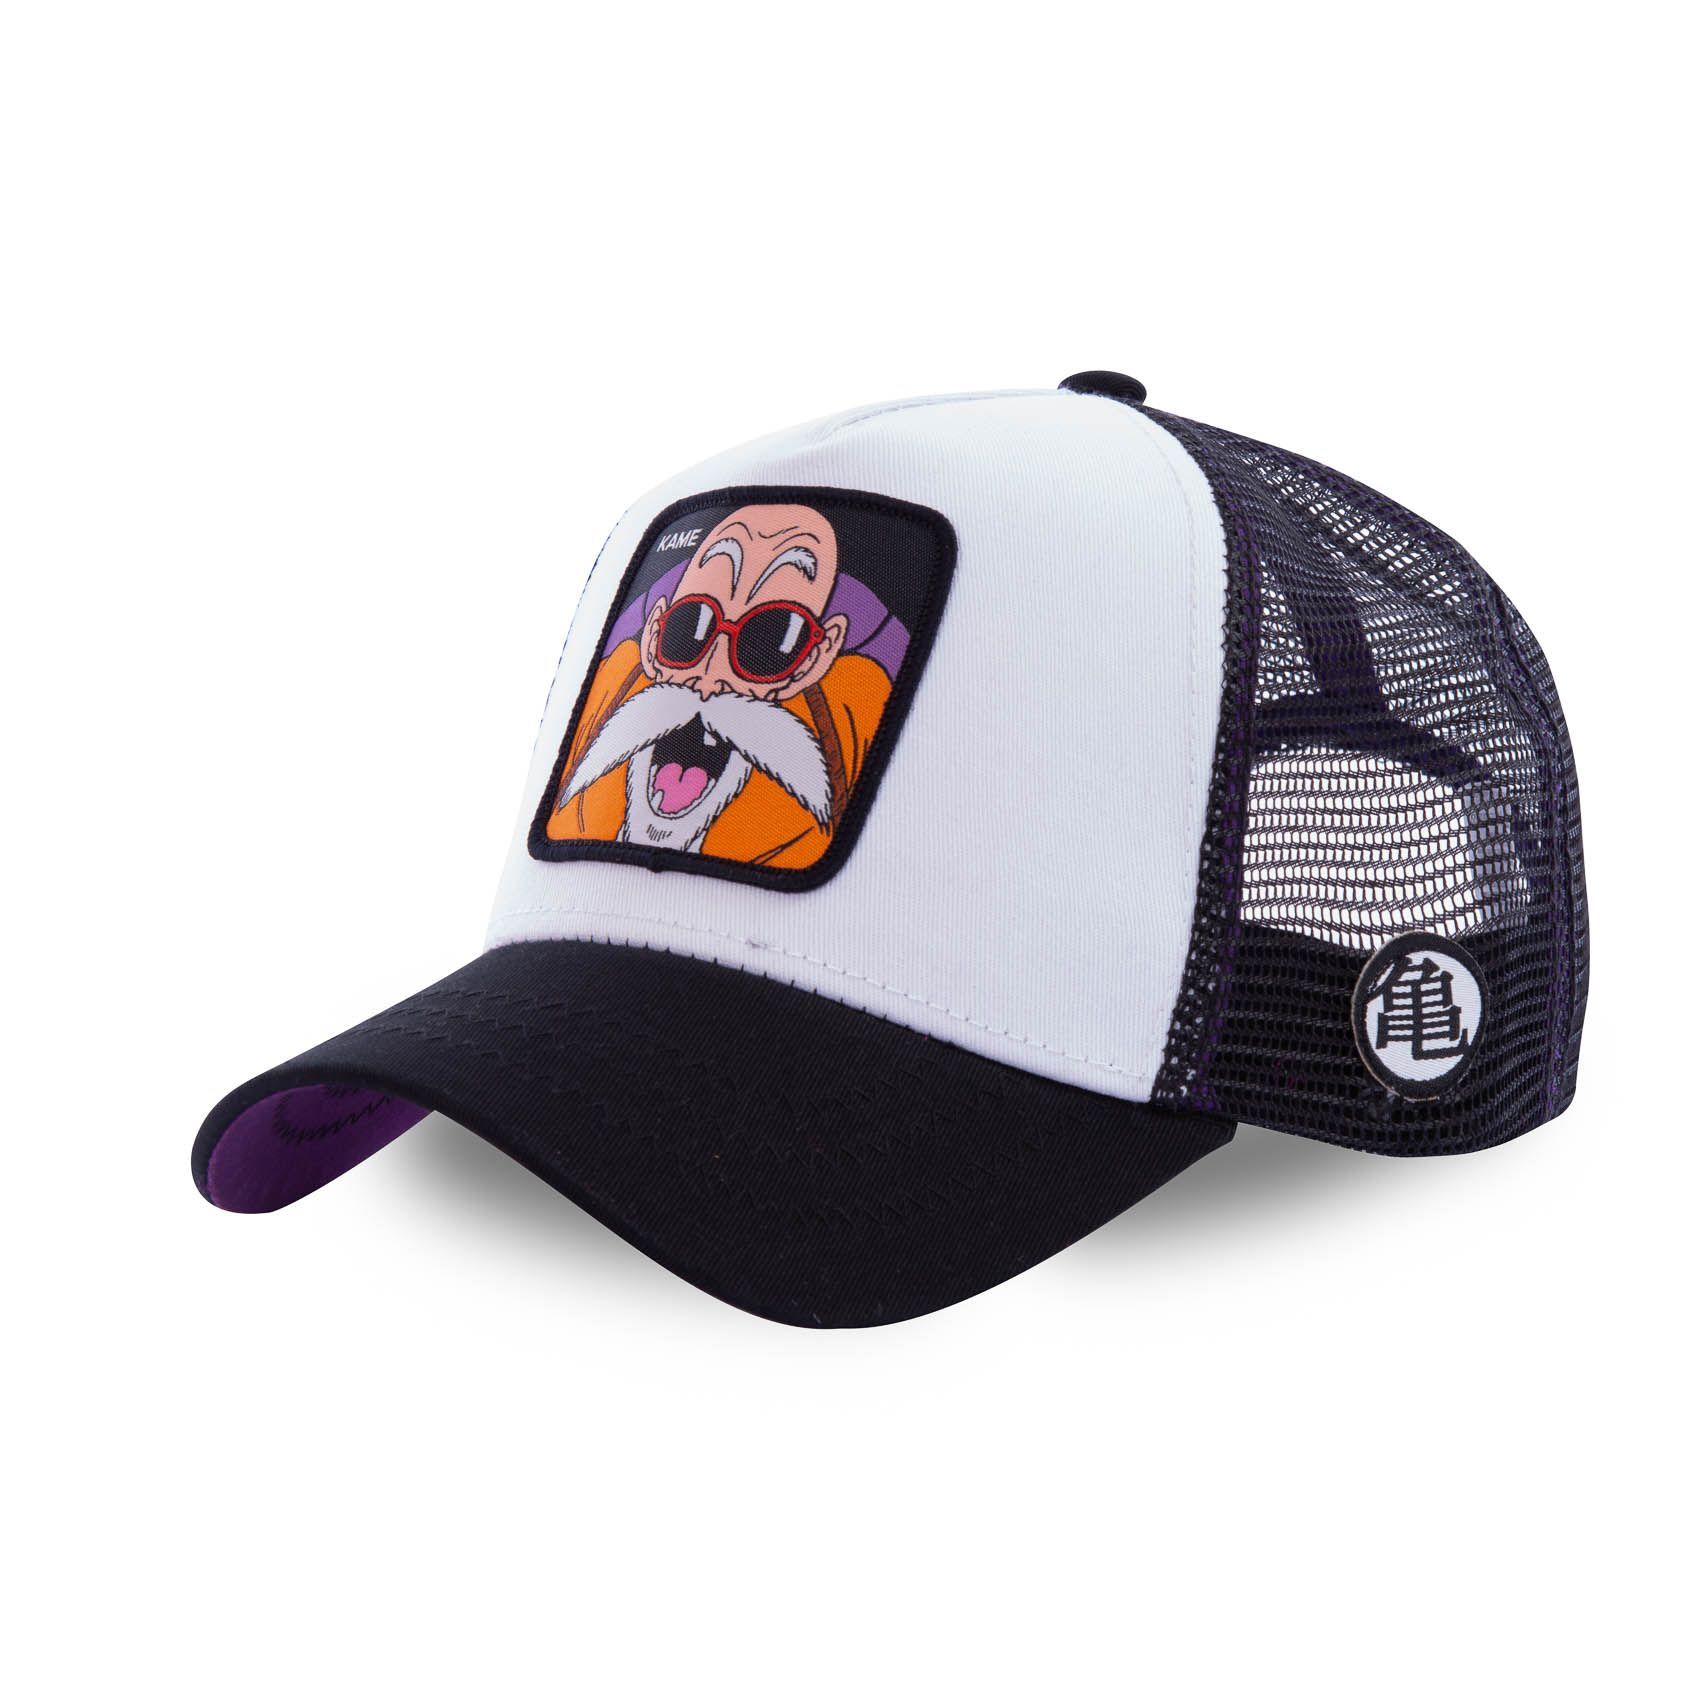 Casquette capslab dragon ball z kame blanc et noir (photo)